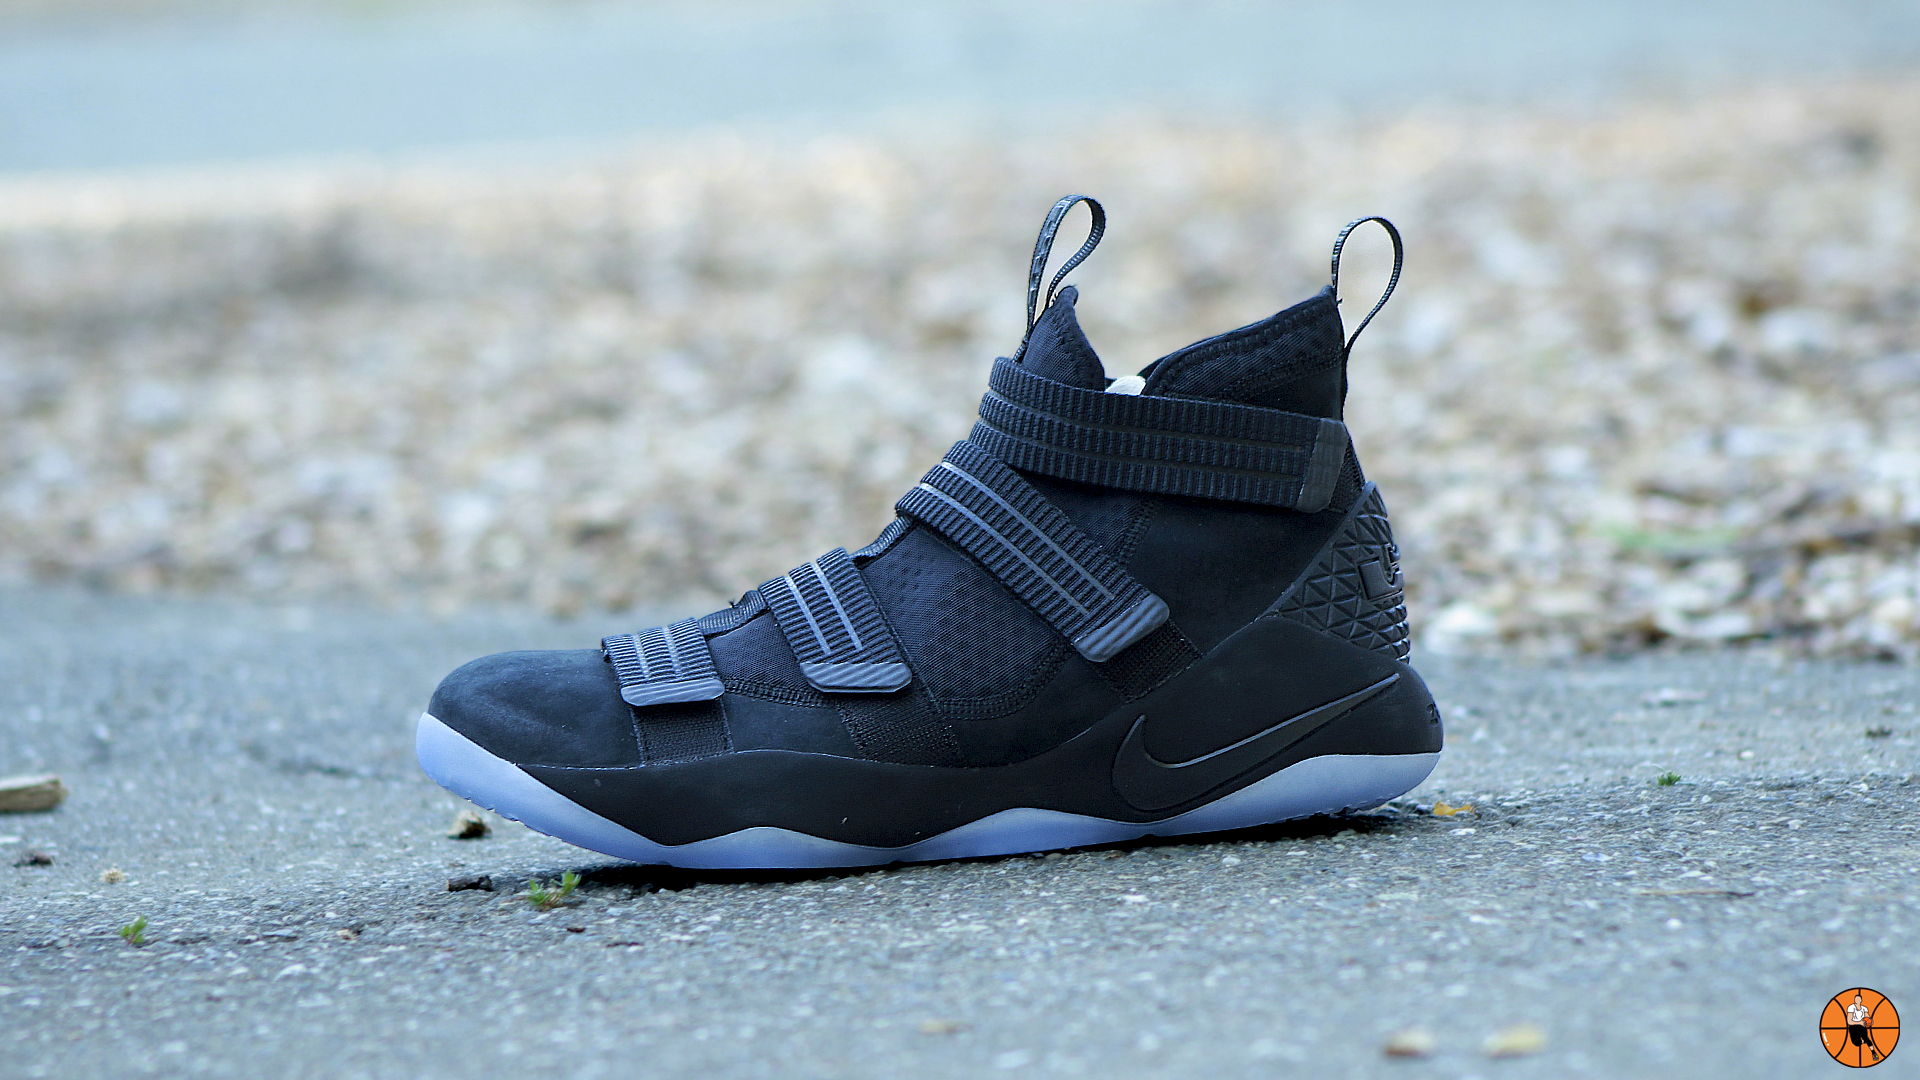 quality design 00f26 77120 Nike LeBron Soldier XI (11) - Detailed Review - WearTesters